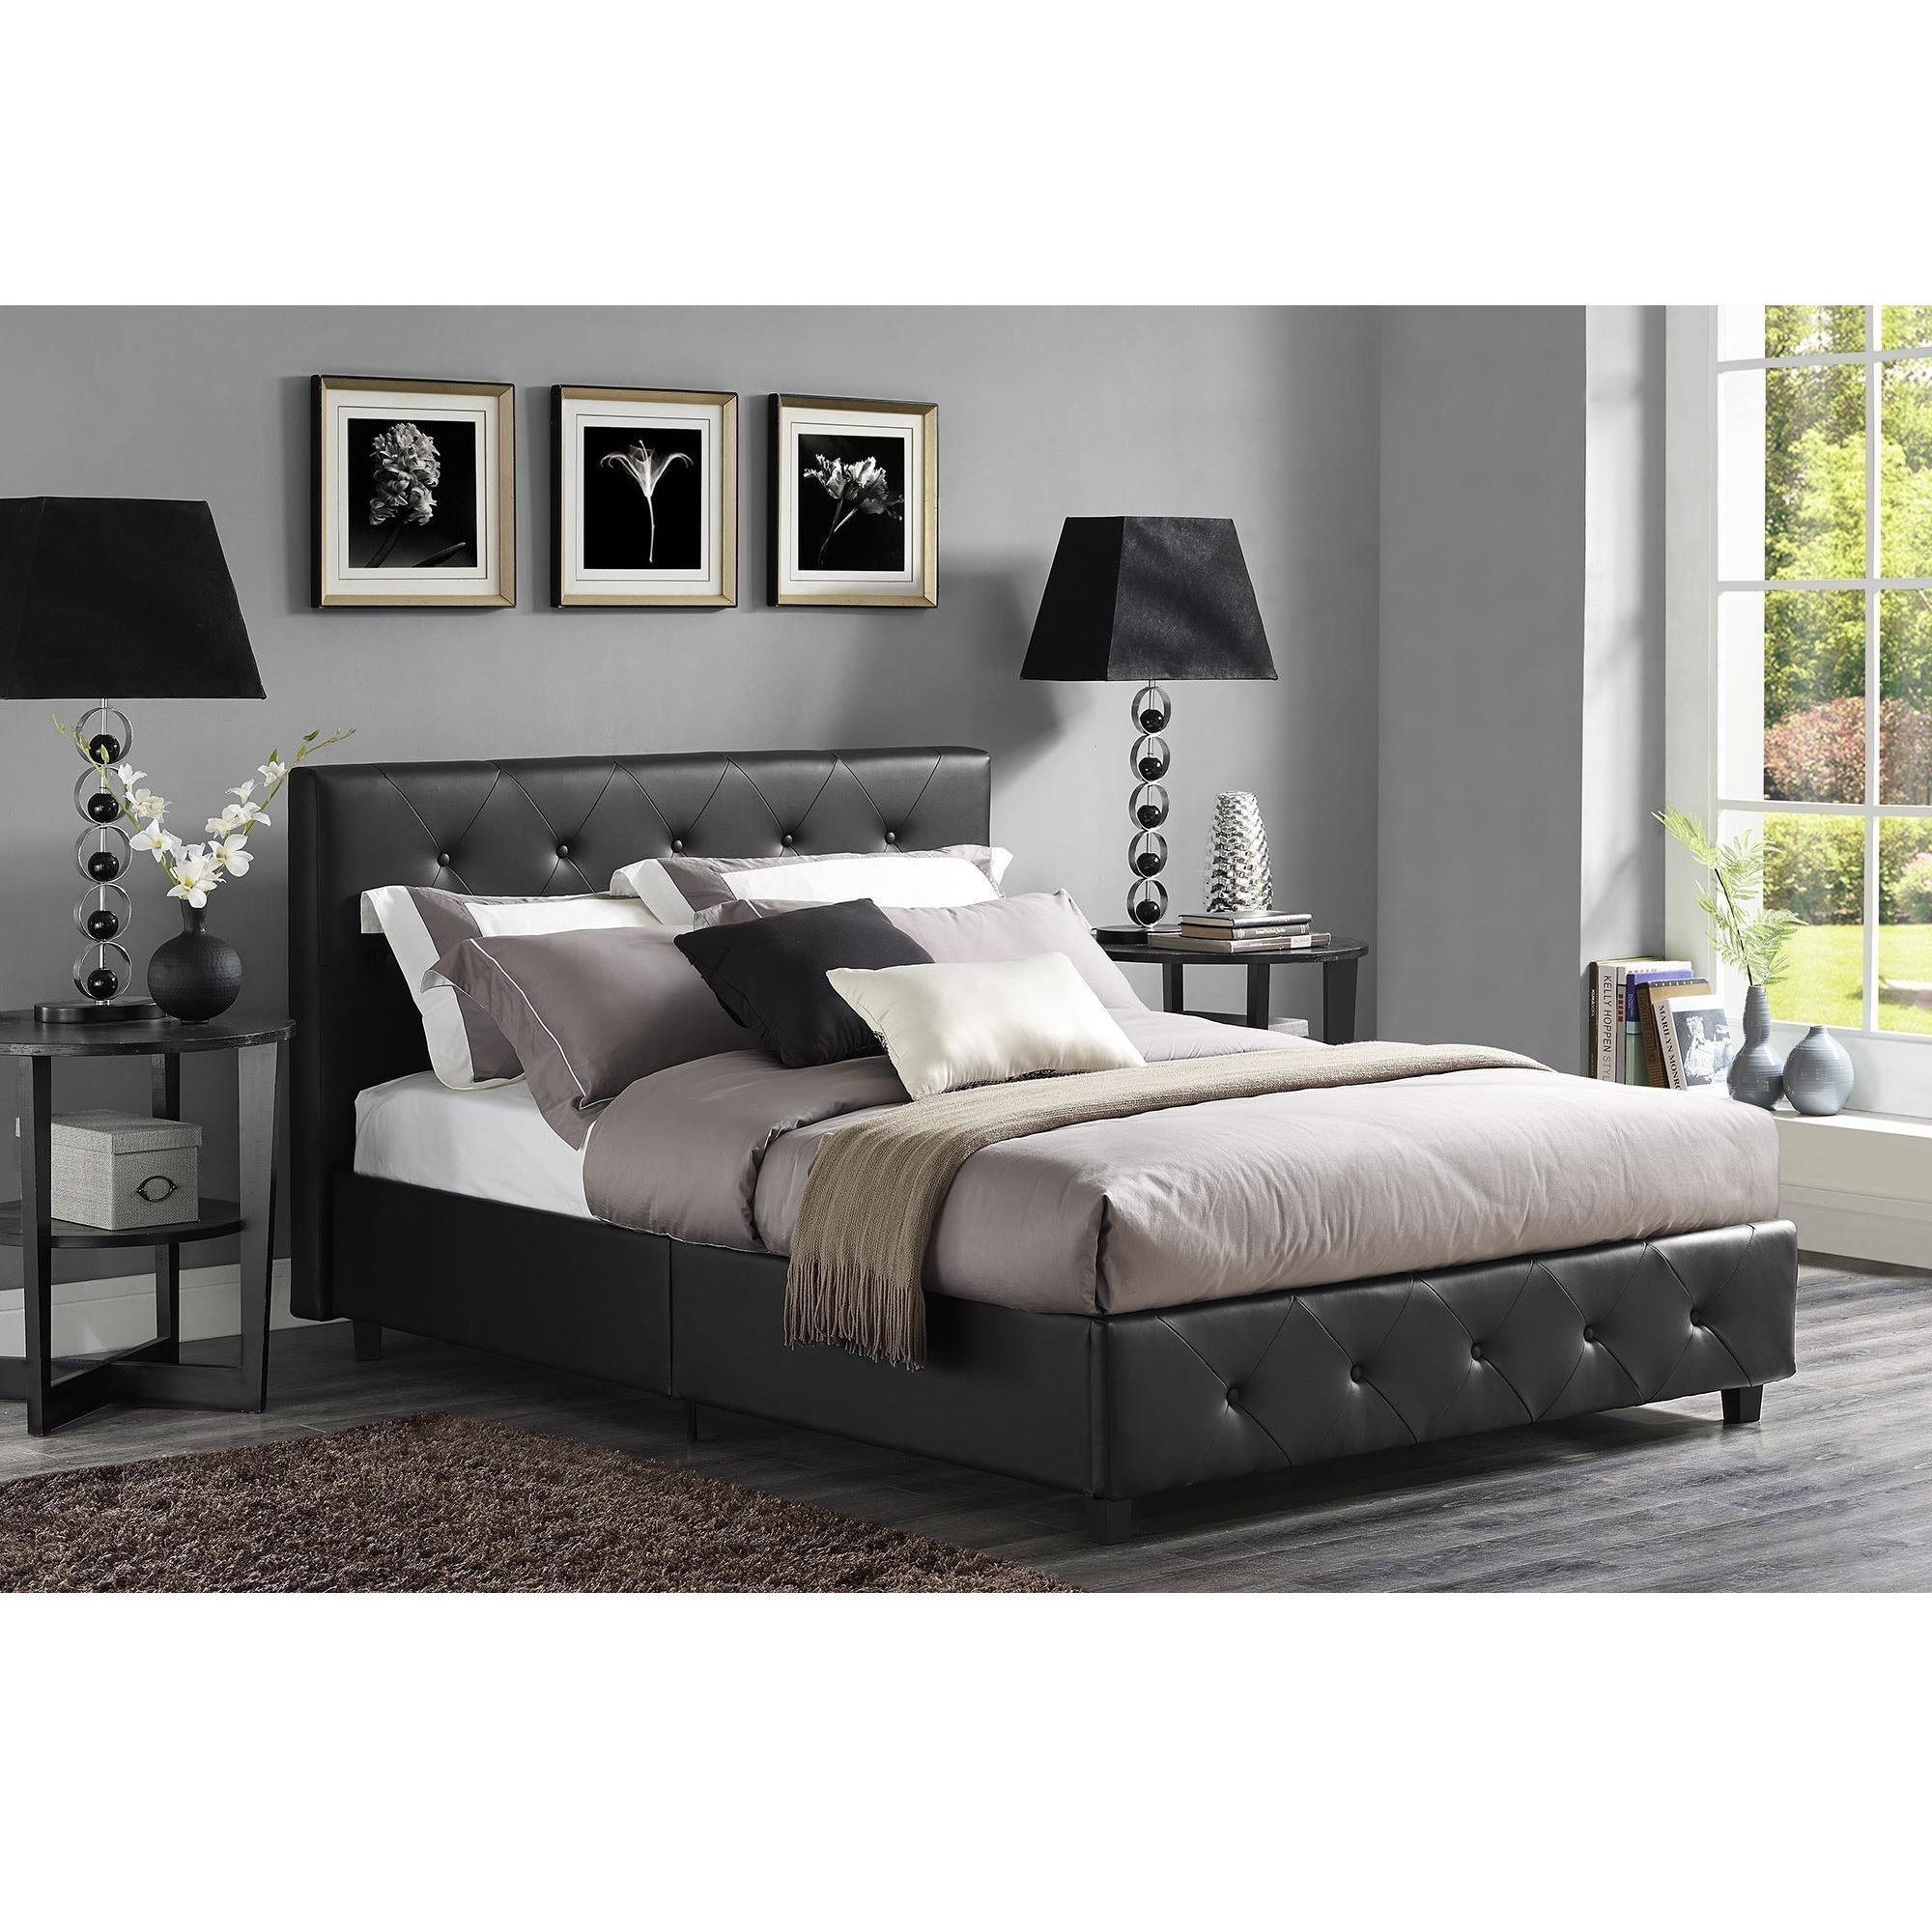 wicker park claremont black faux leather upholstered bed queen